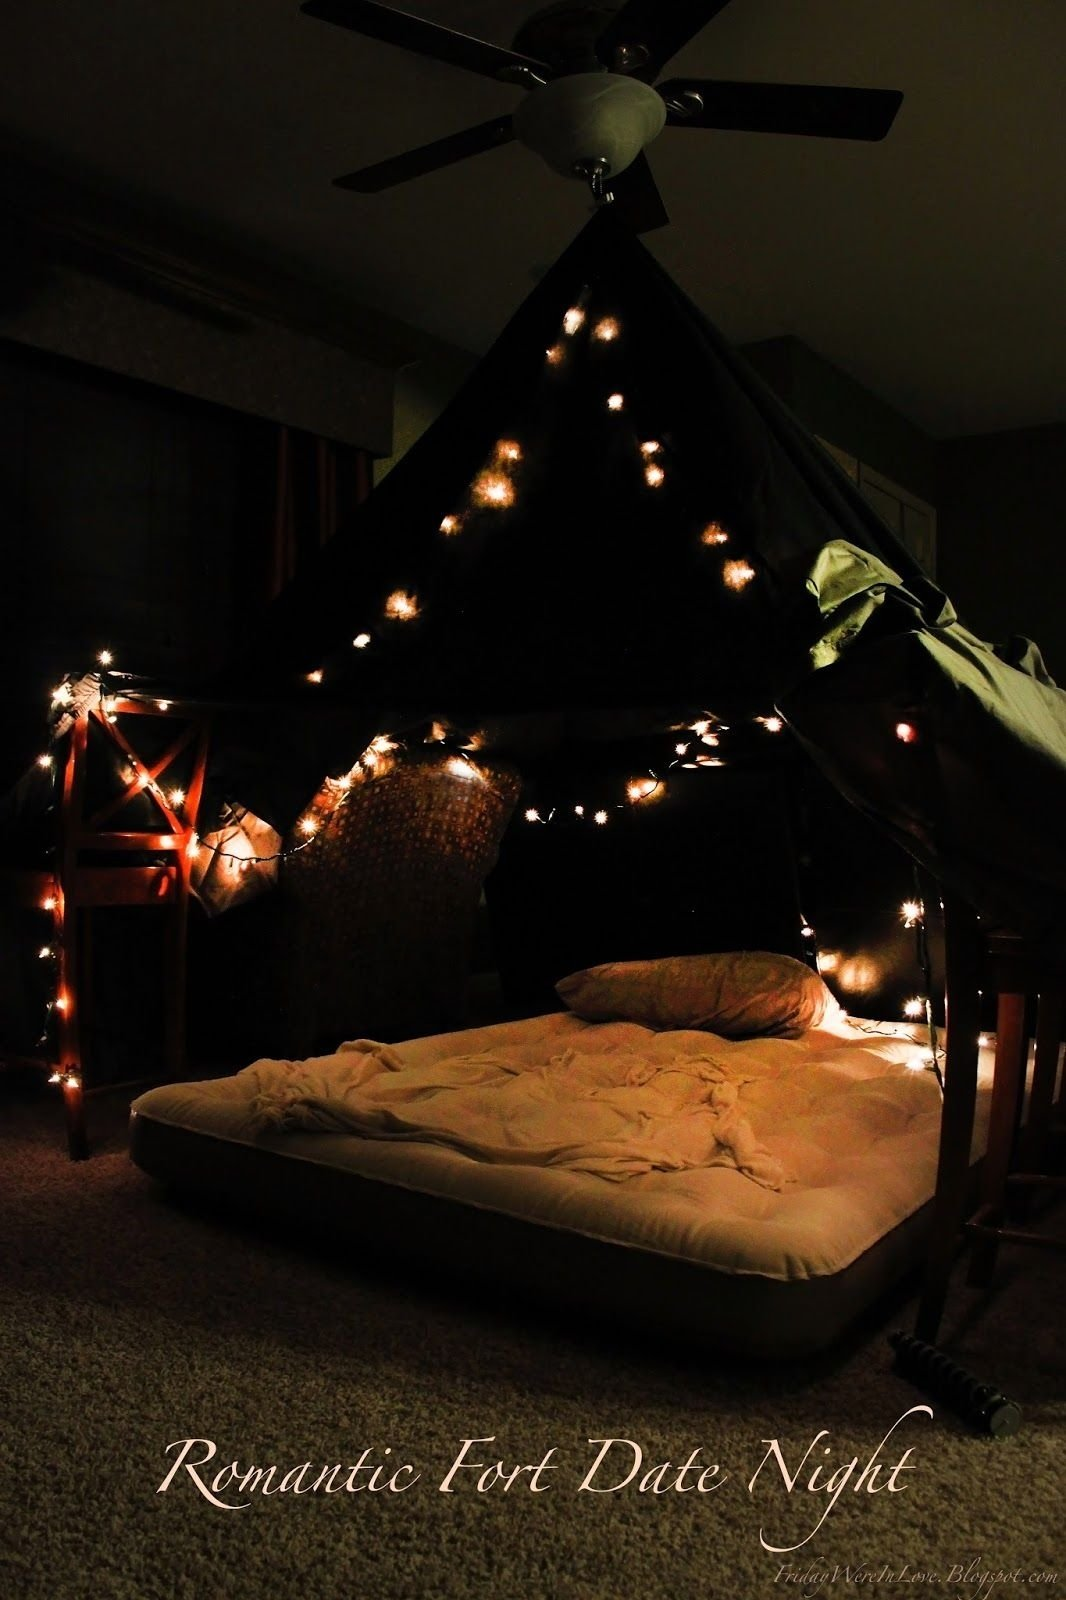 10 Fantastic Romantic Ideas For Couples At Home 12 months of dates january romantic fort night forts romantic 2 2020